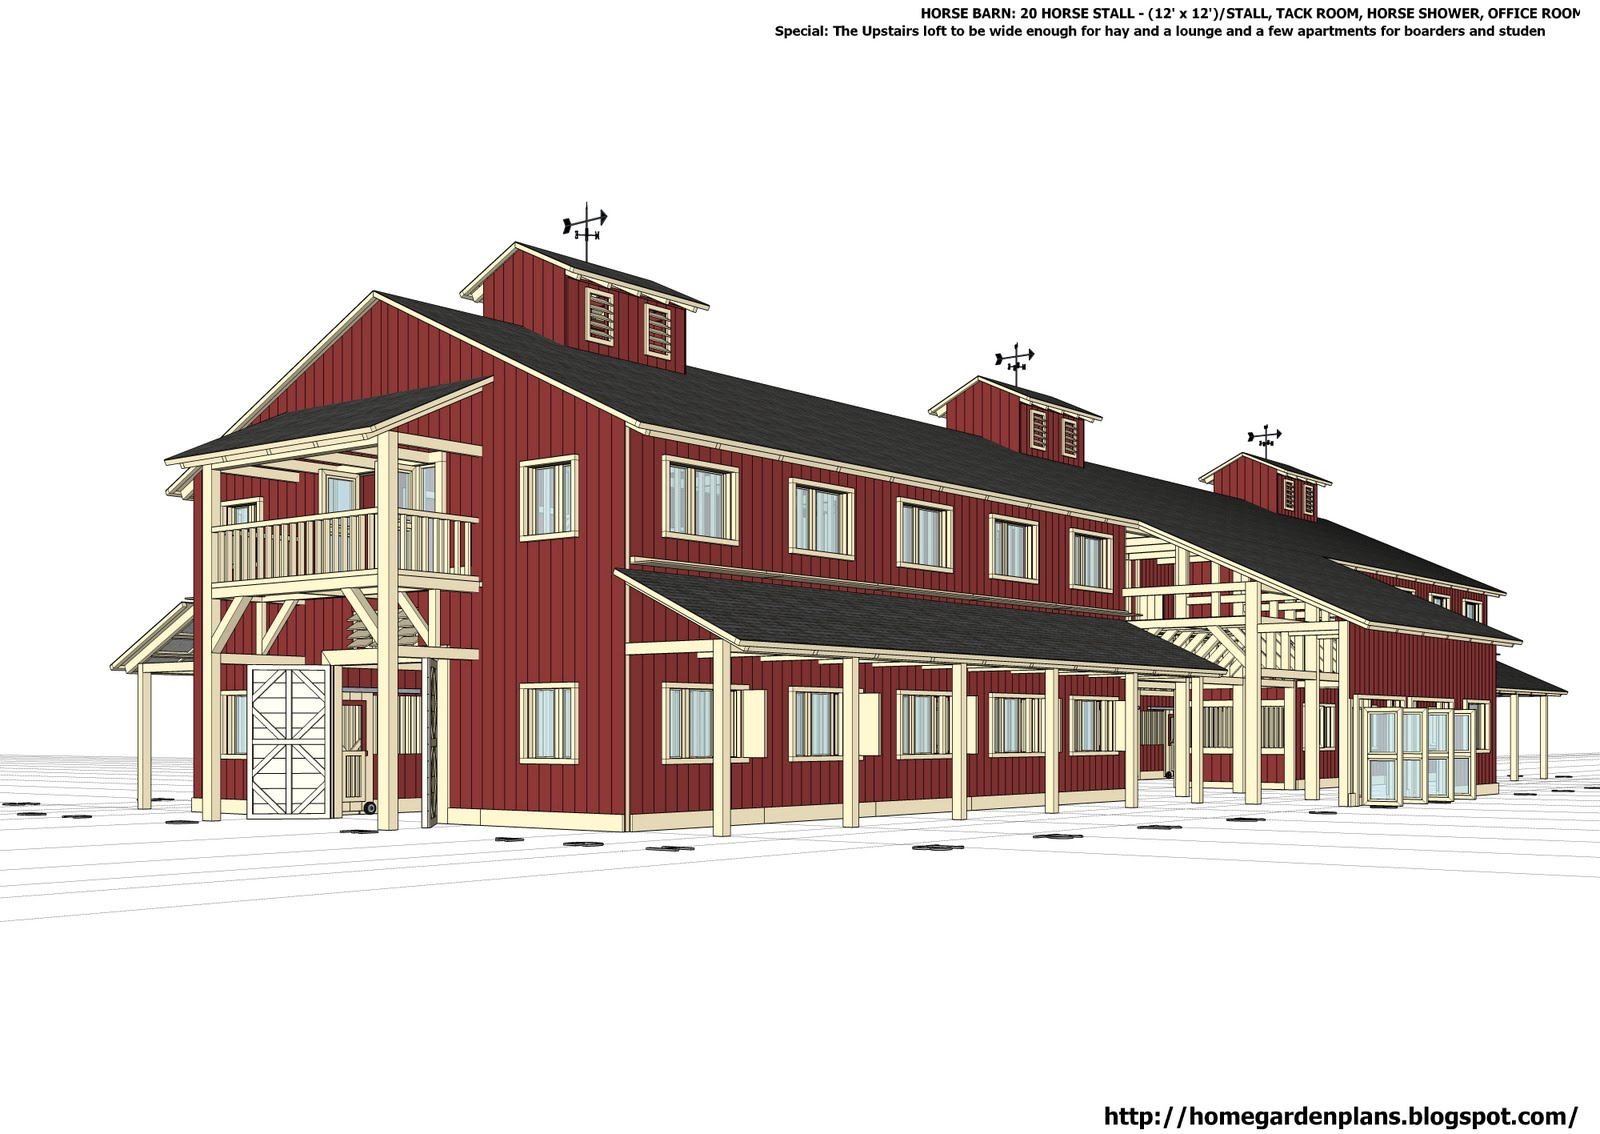 Horse barns designs joy studio design gallery best design Barn designs